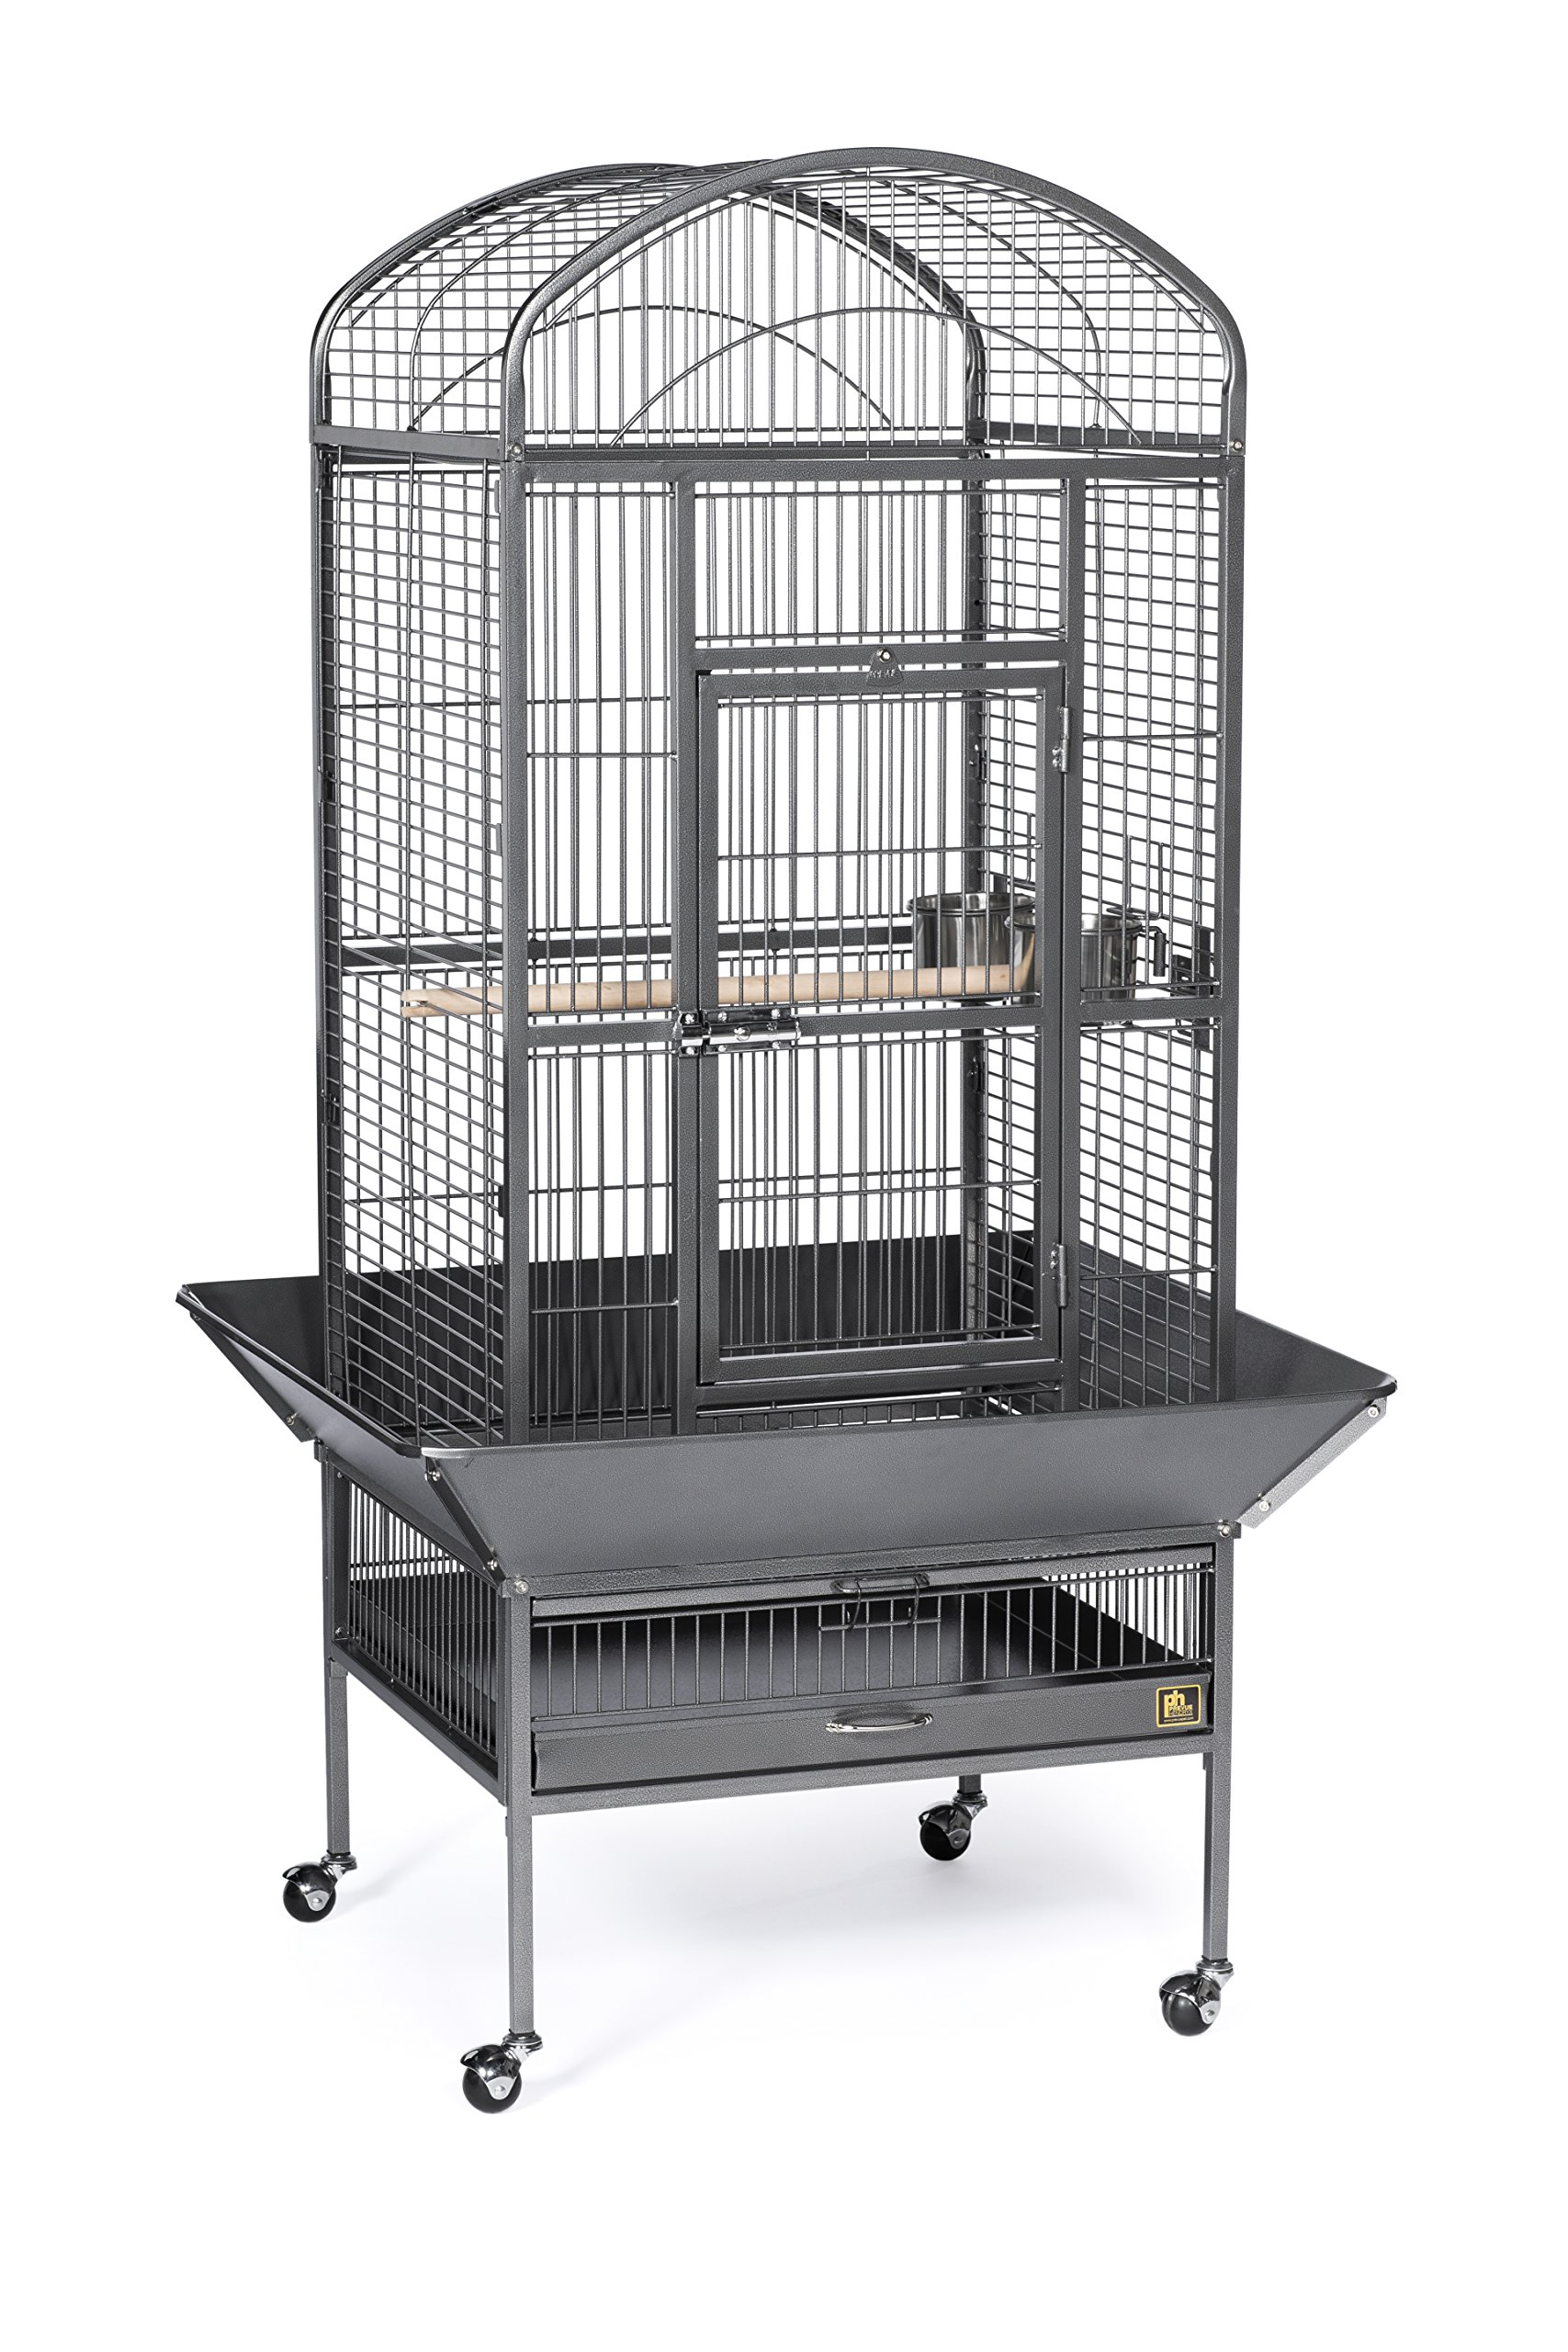 Prevue Pet Products 34521 Dometop Bird Cage, Large, Black Hammertone